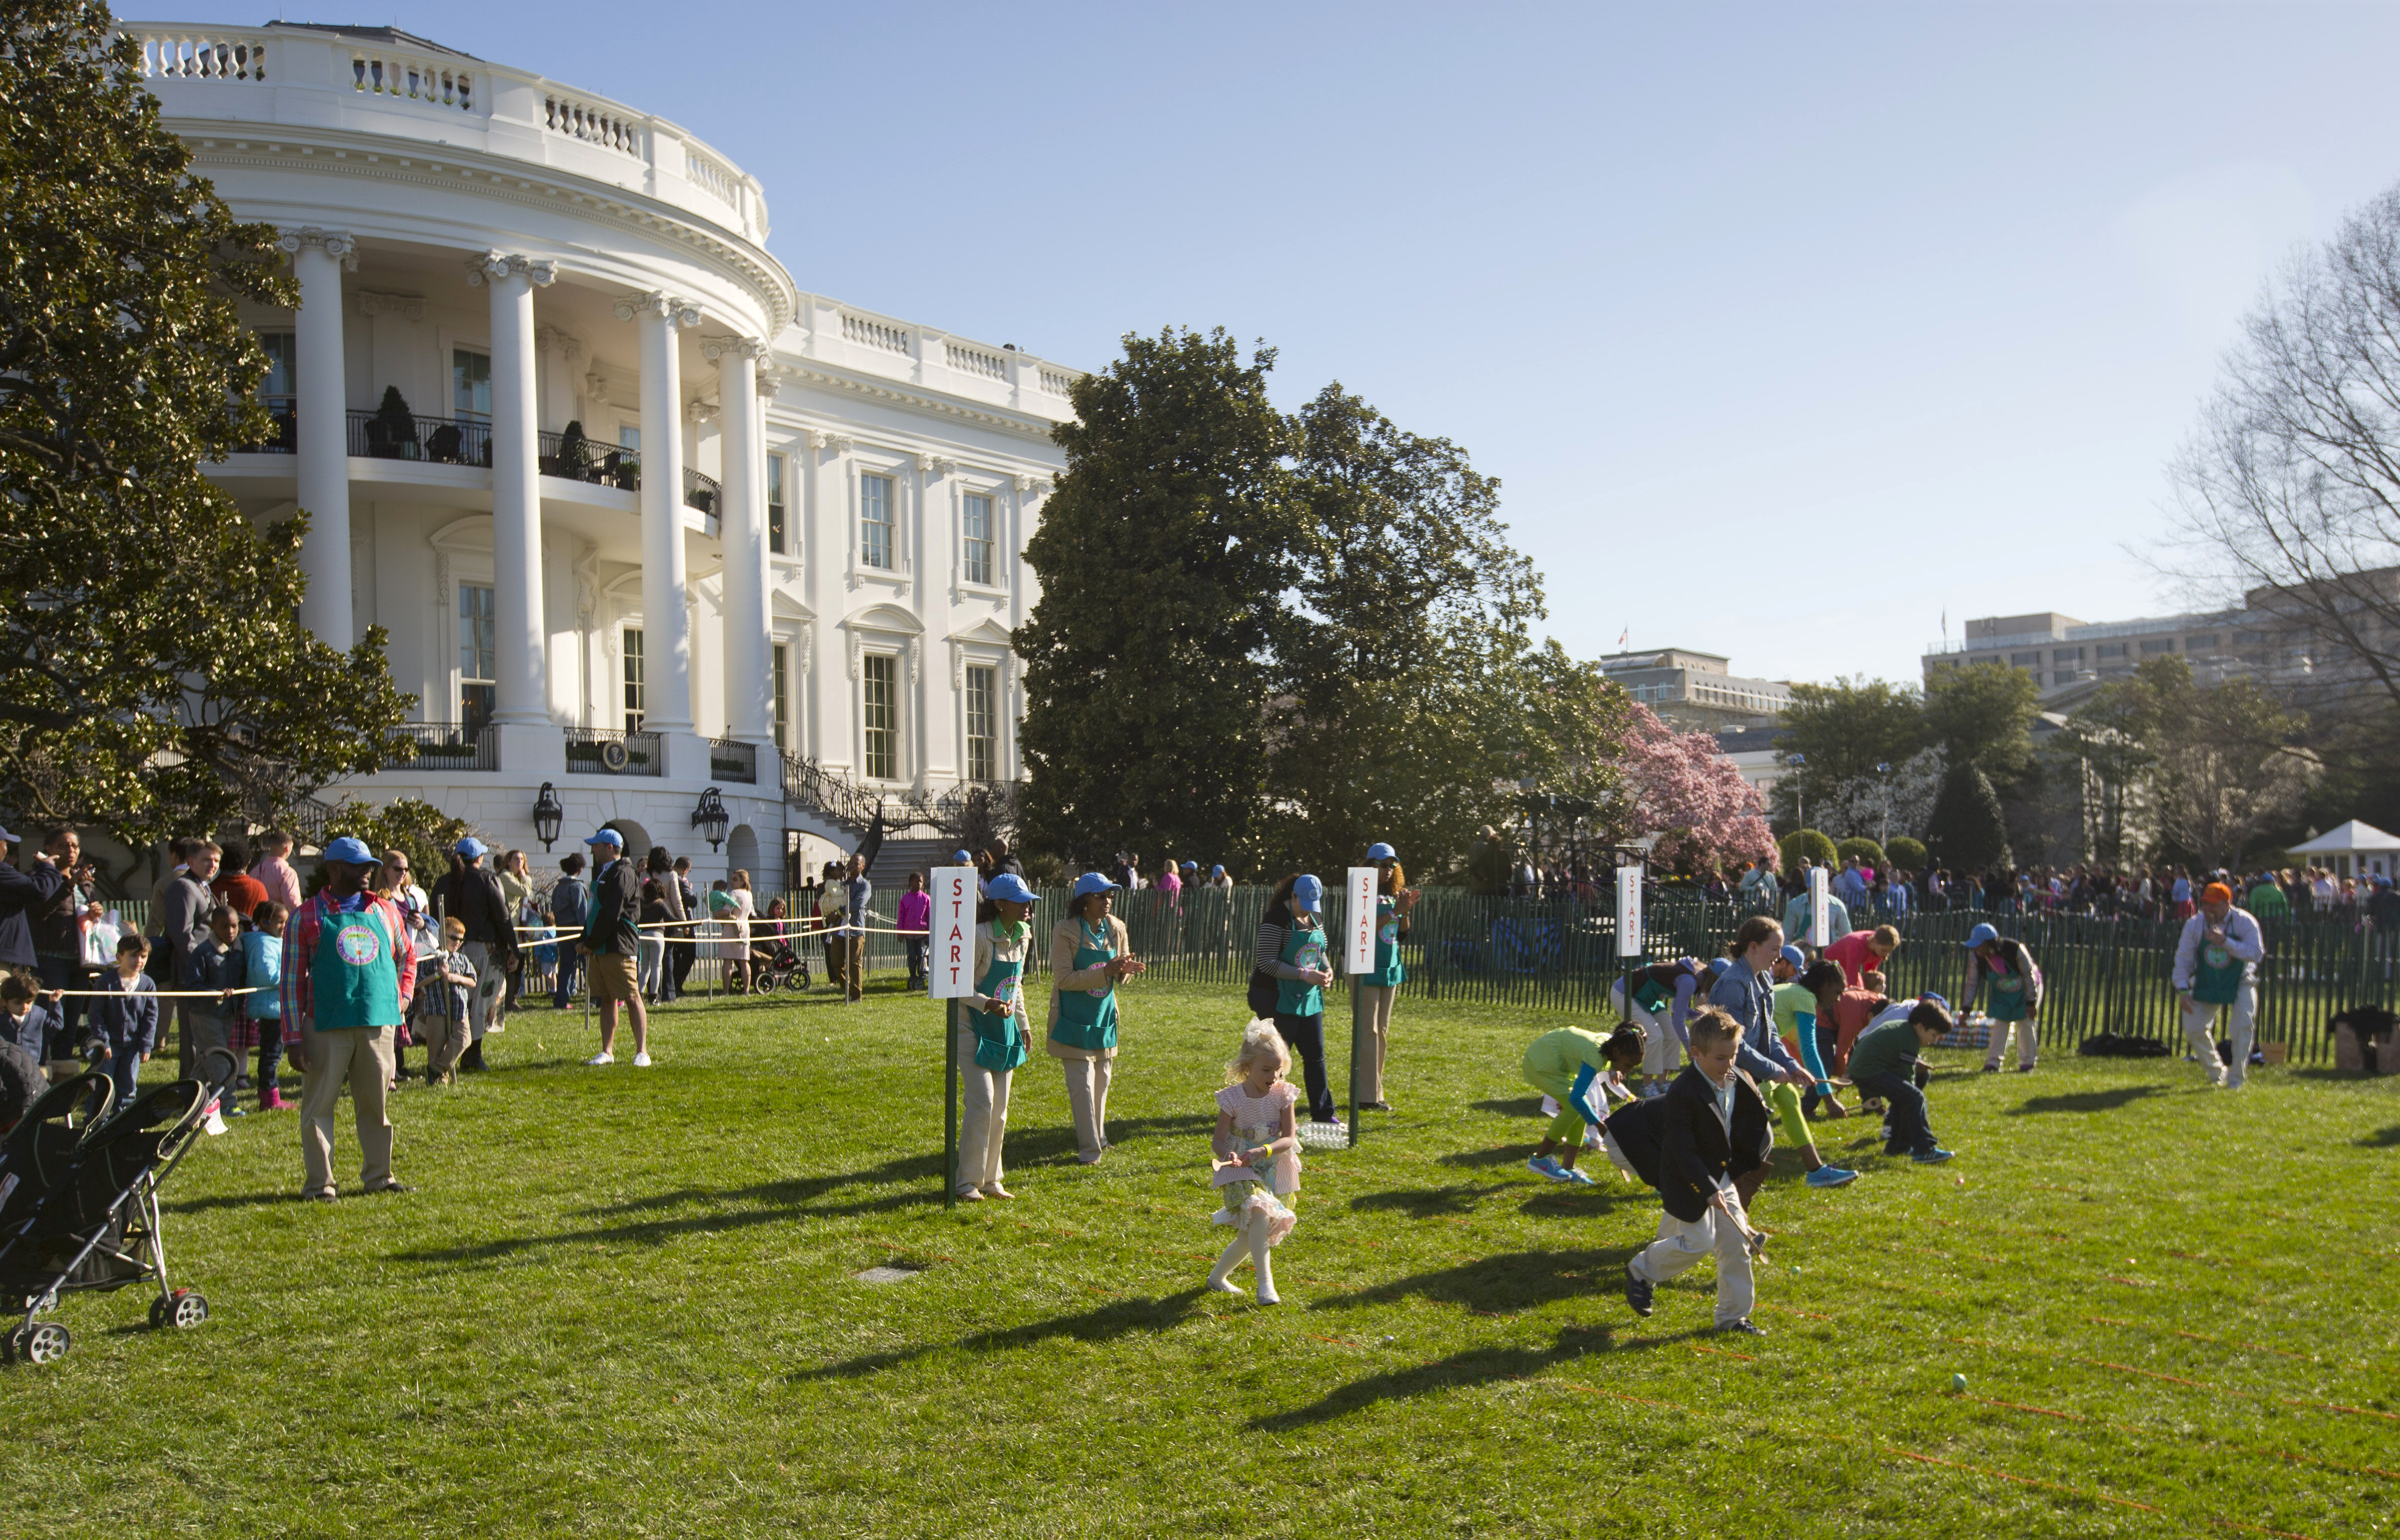 Your chance to nab White House Easter Egg Roll tickets